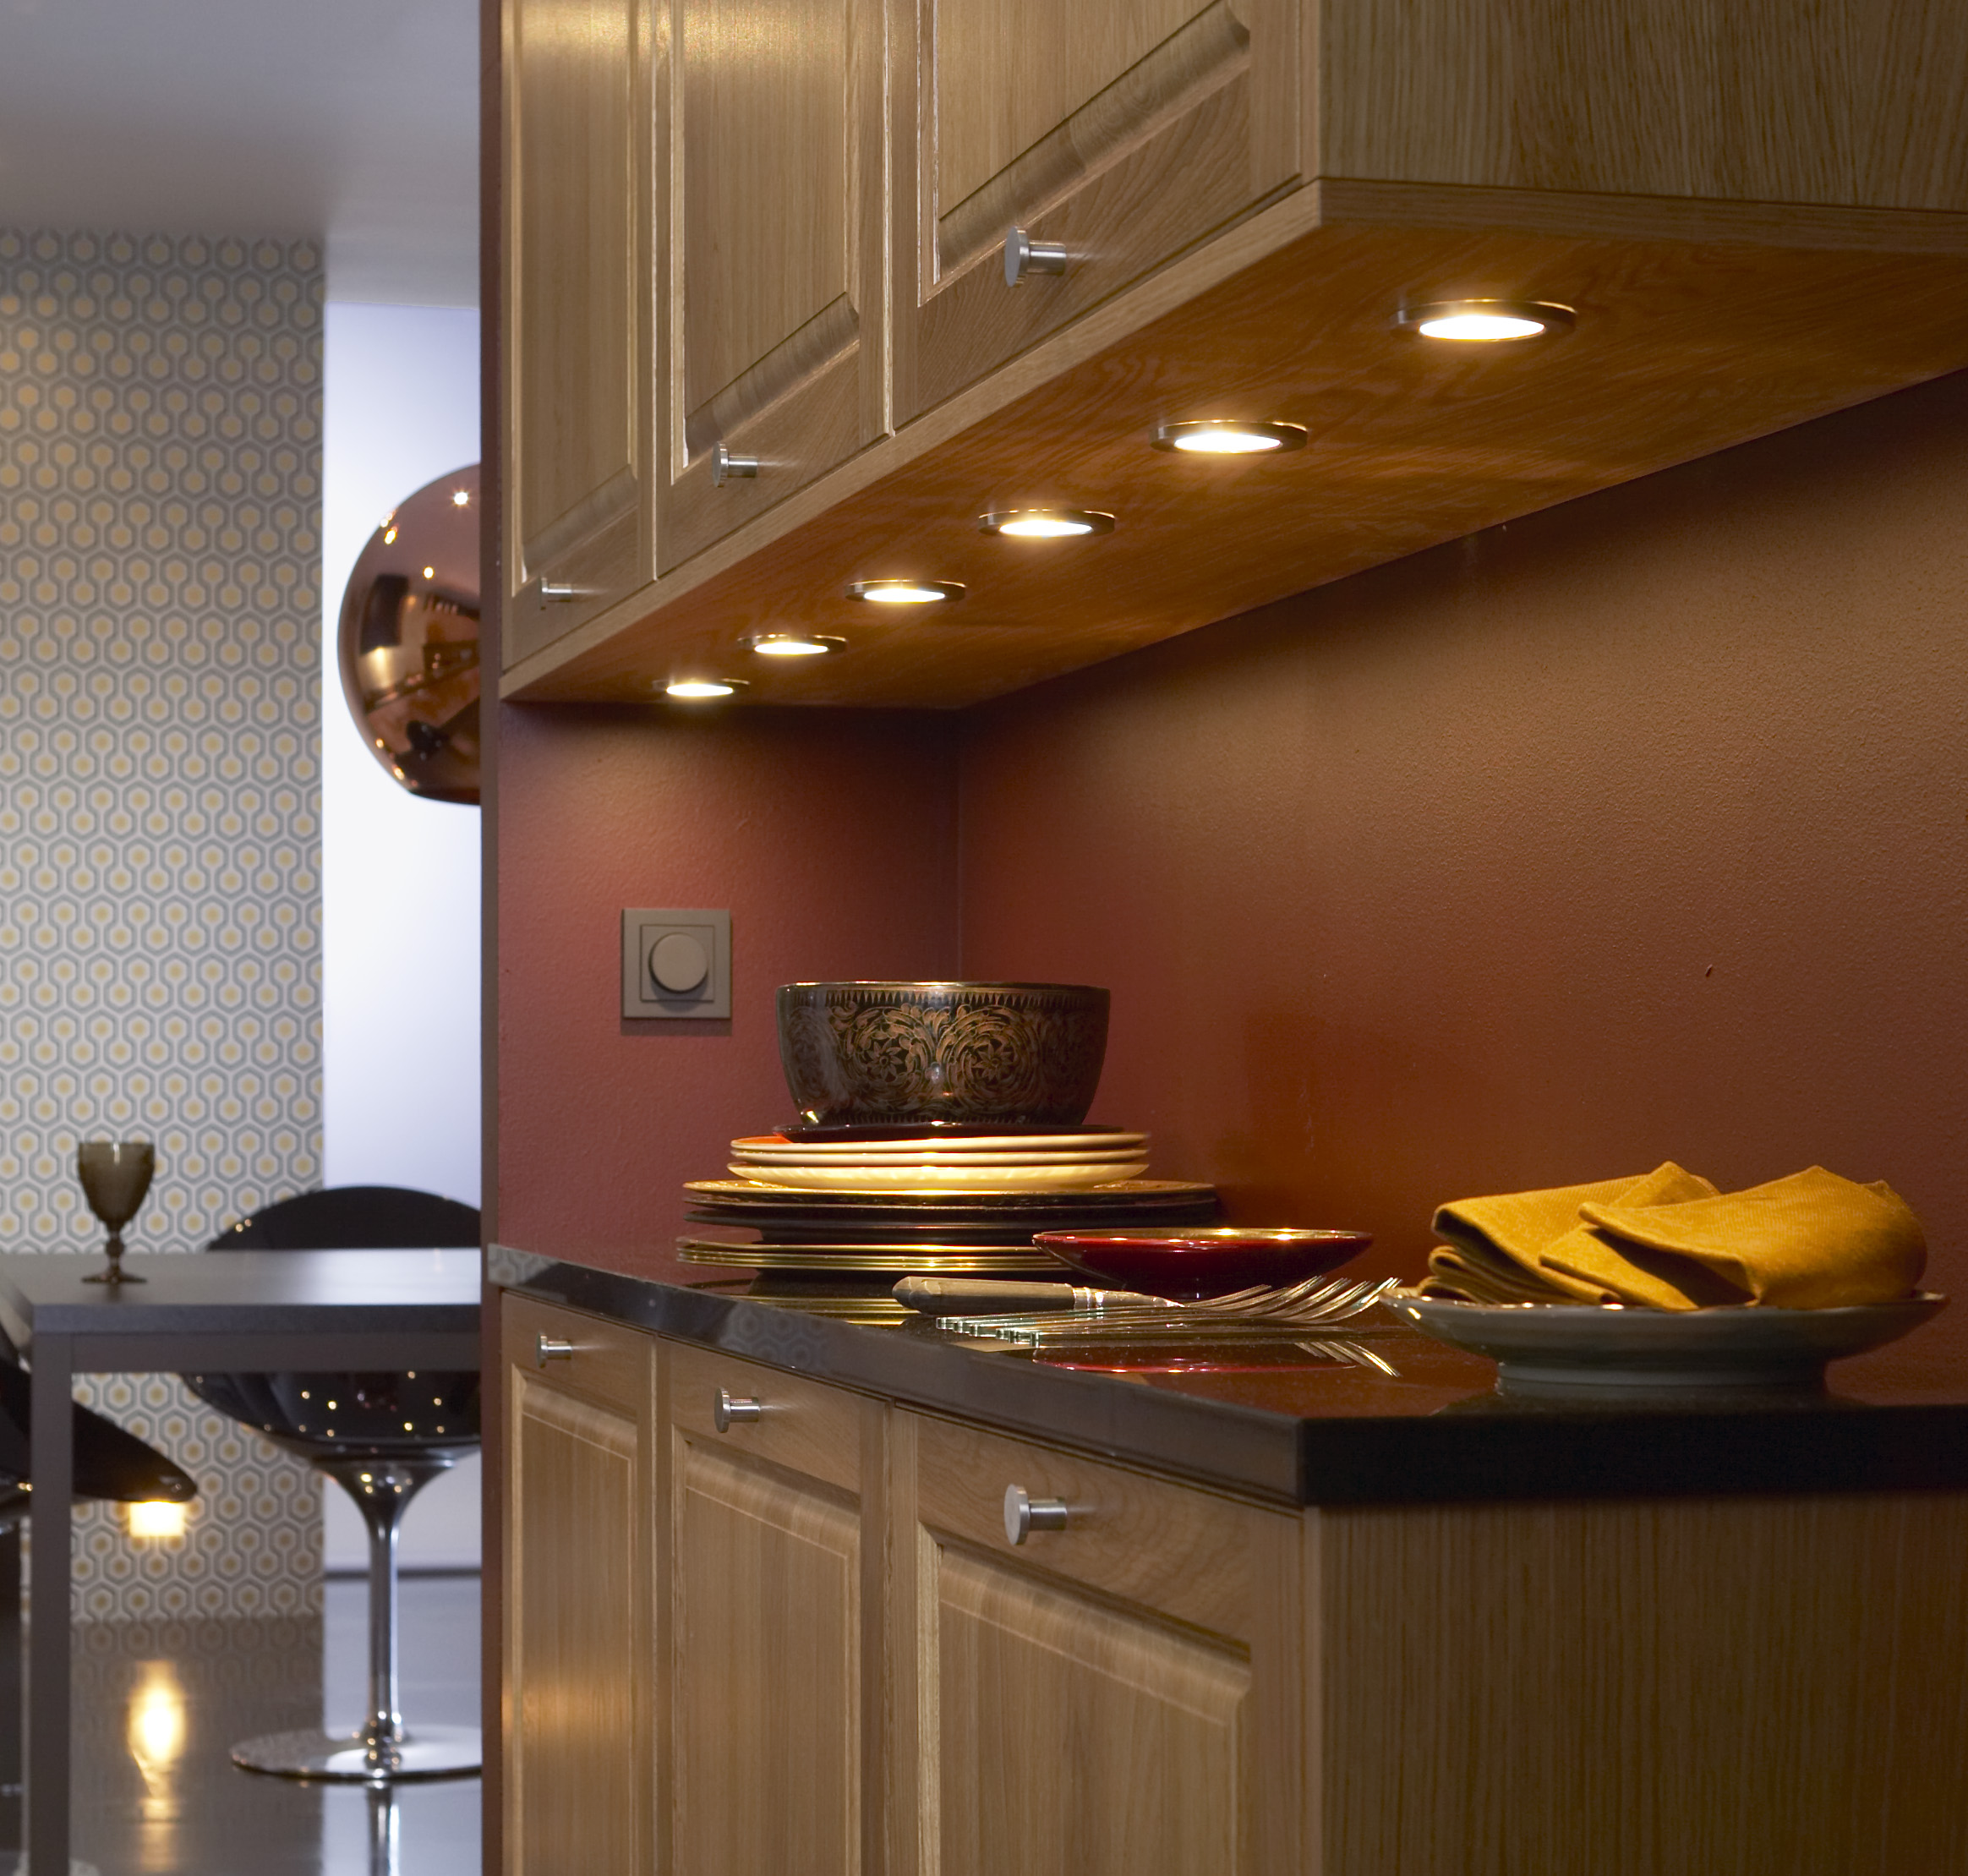 Indian kitchen design blog - Great Indian Kitchens